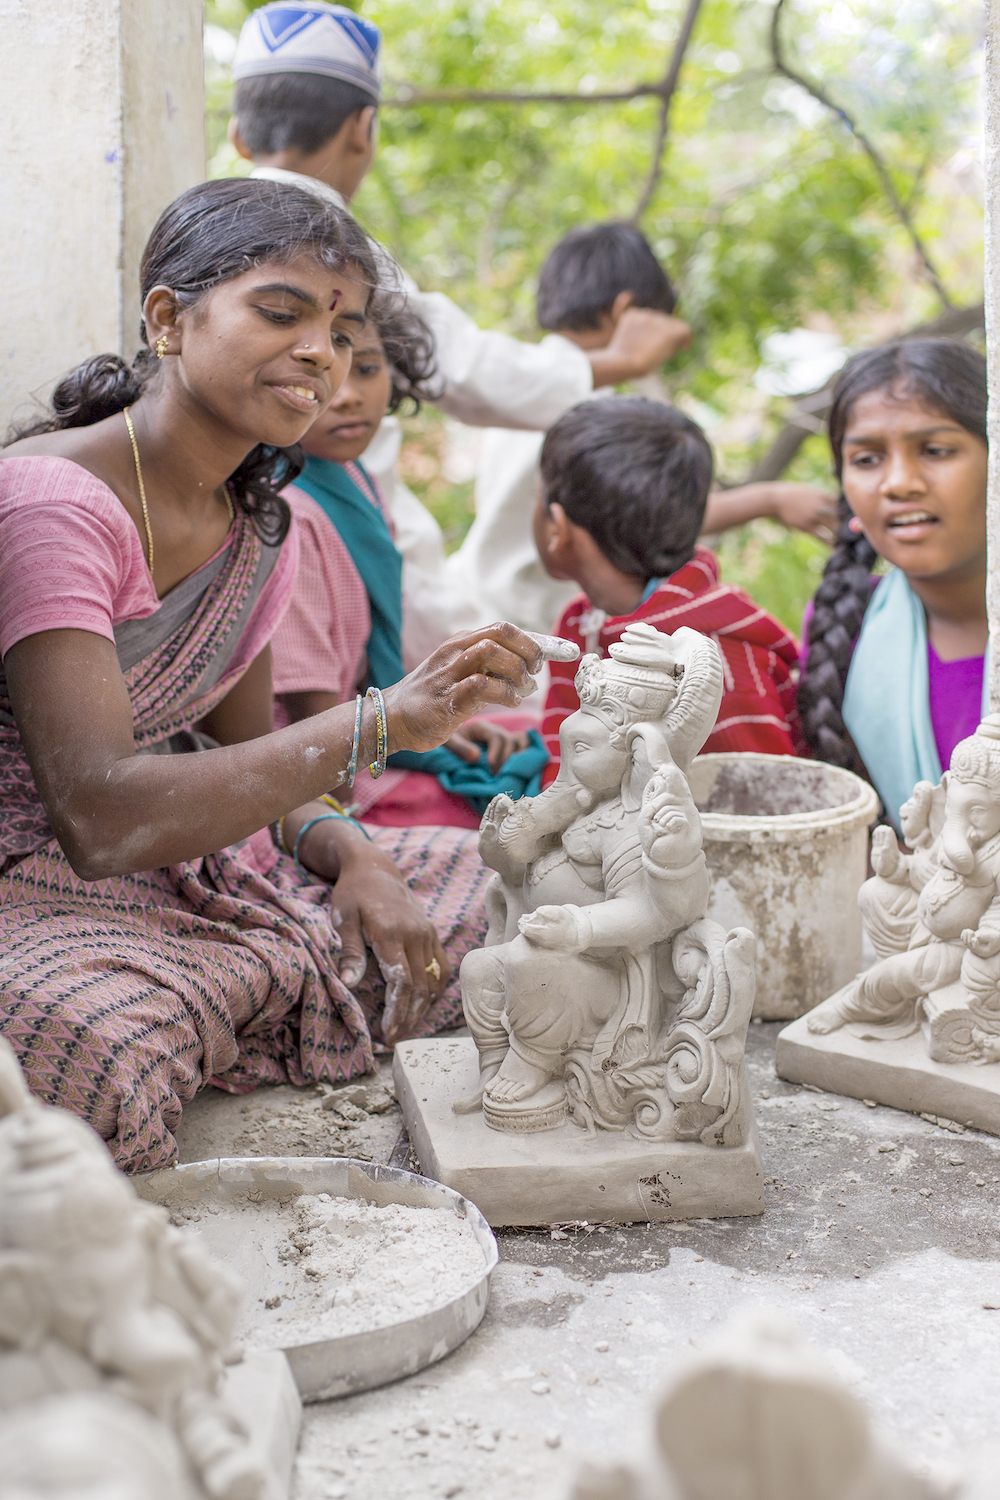 The statues being made in Anantapur © vdhya / Shutterstock.com